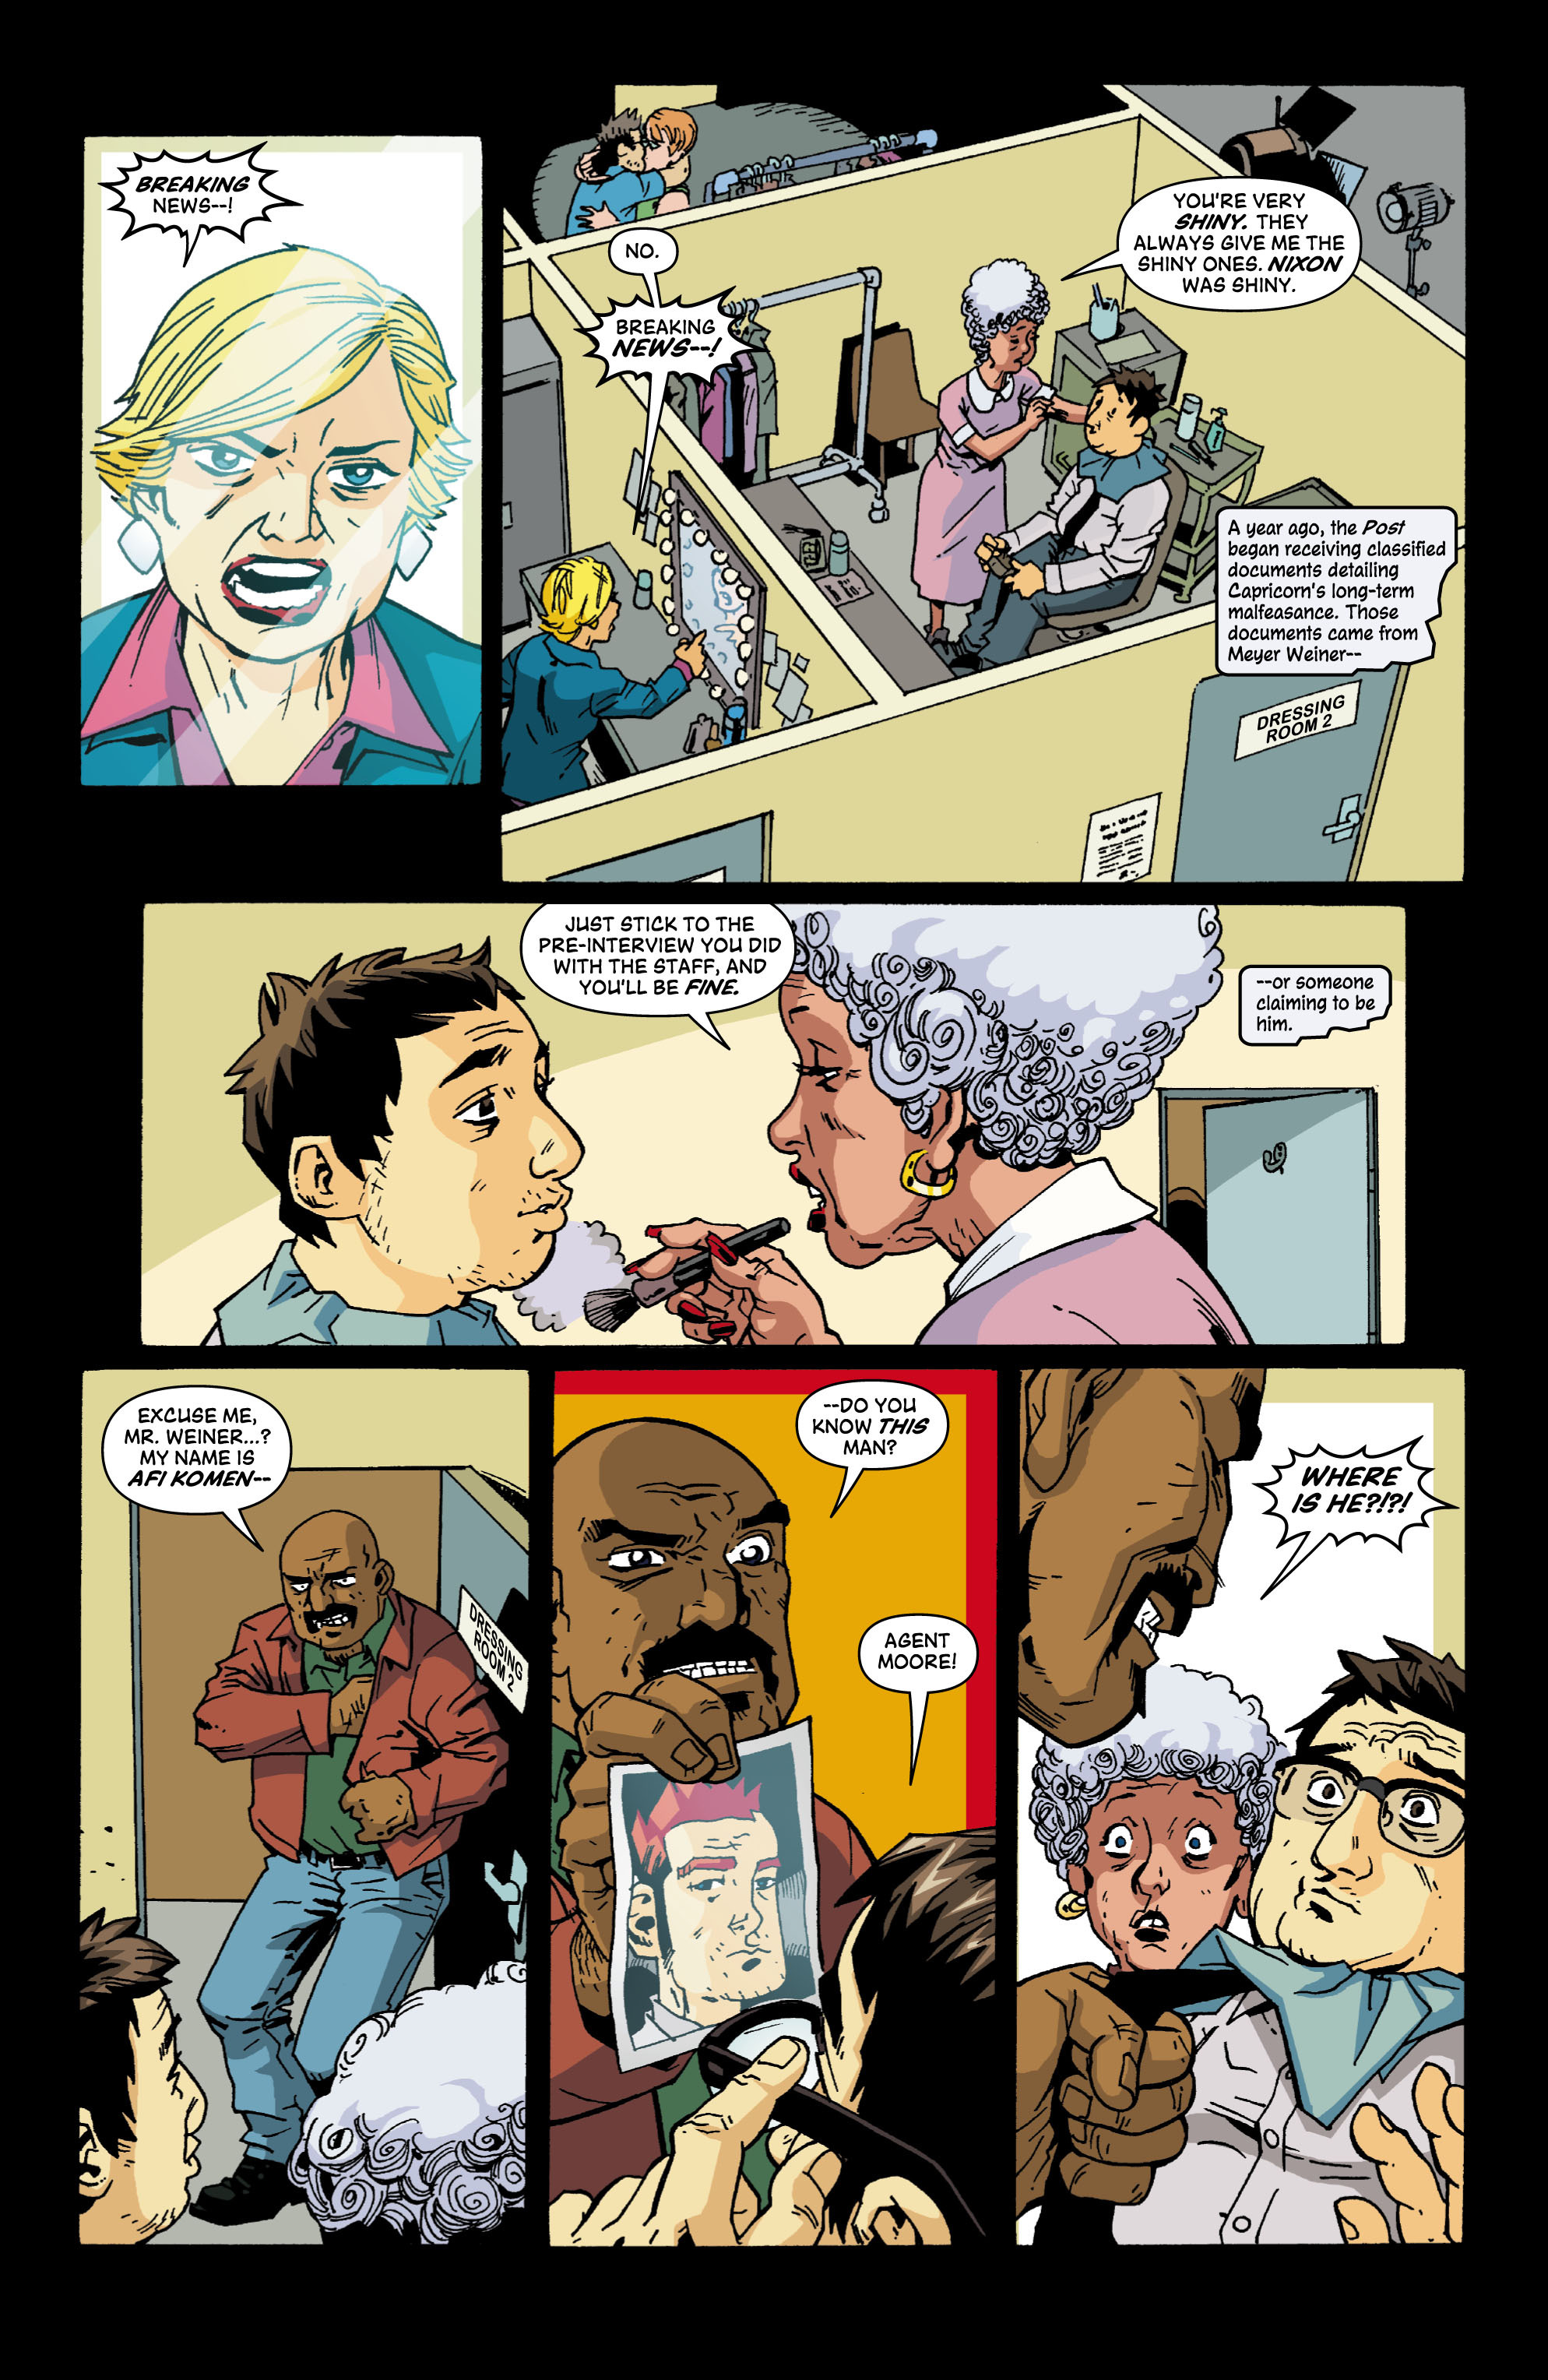 Read online Red Herring comic -  Issue #6 - 17